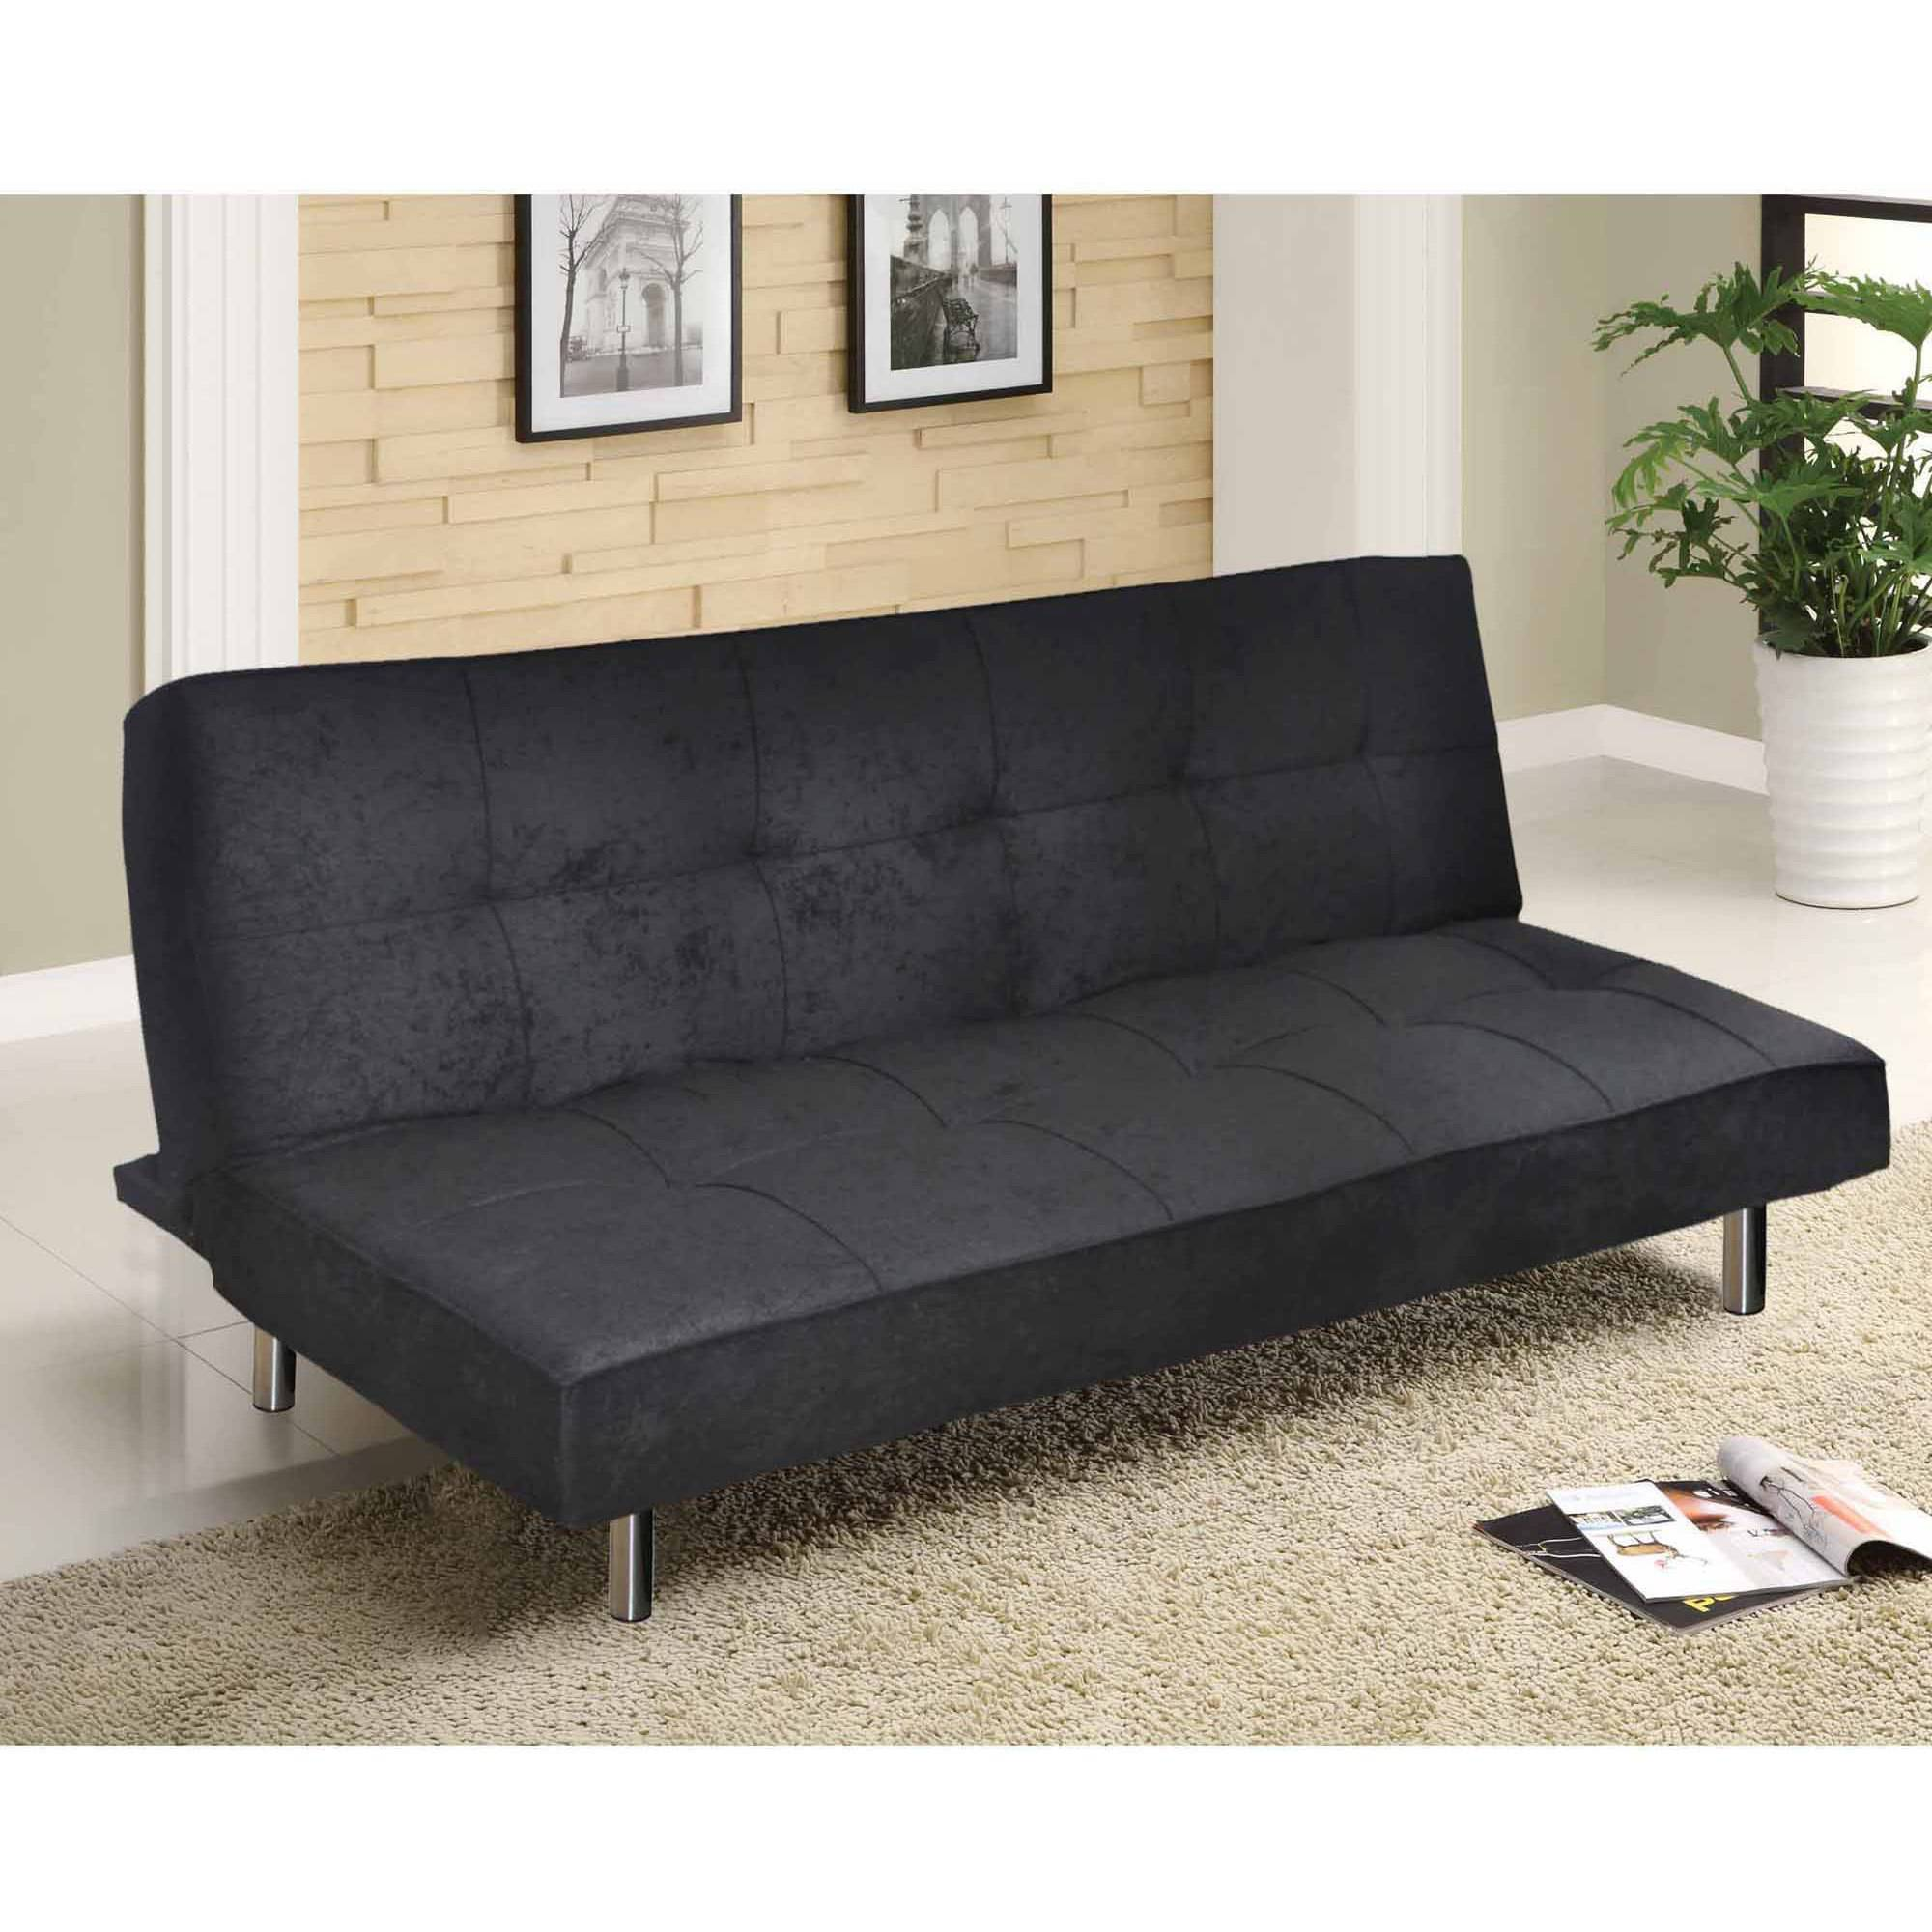 best choice products modern entertainment futon sofa bed fold up u0026 down FCBTOZT